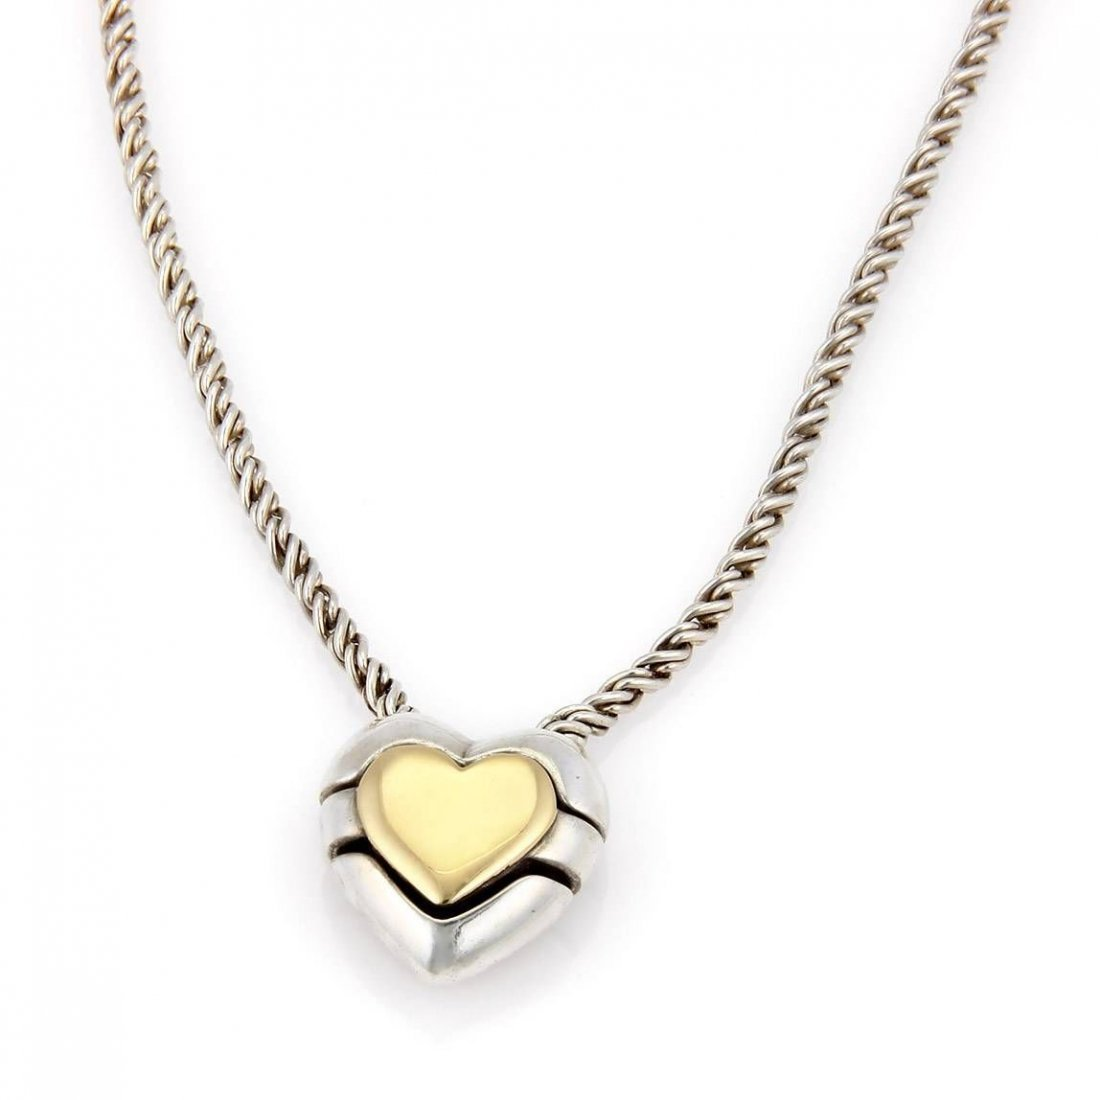 Tiffany & Co. 18kt Y/Gold 925 Silver Slider Heart